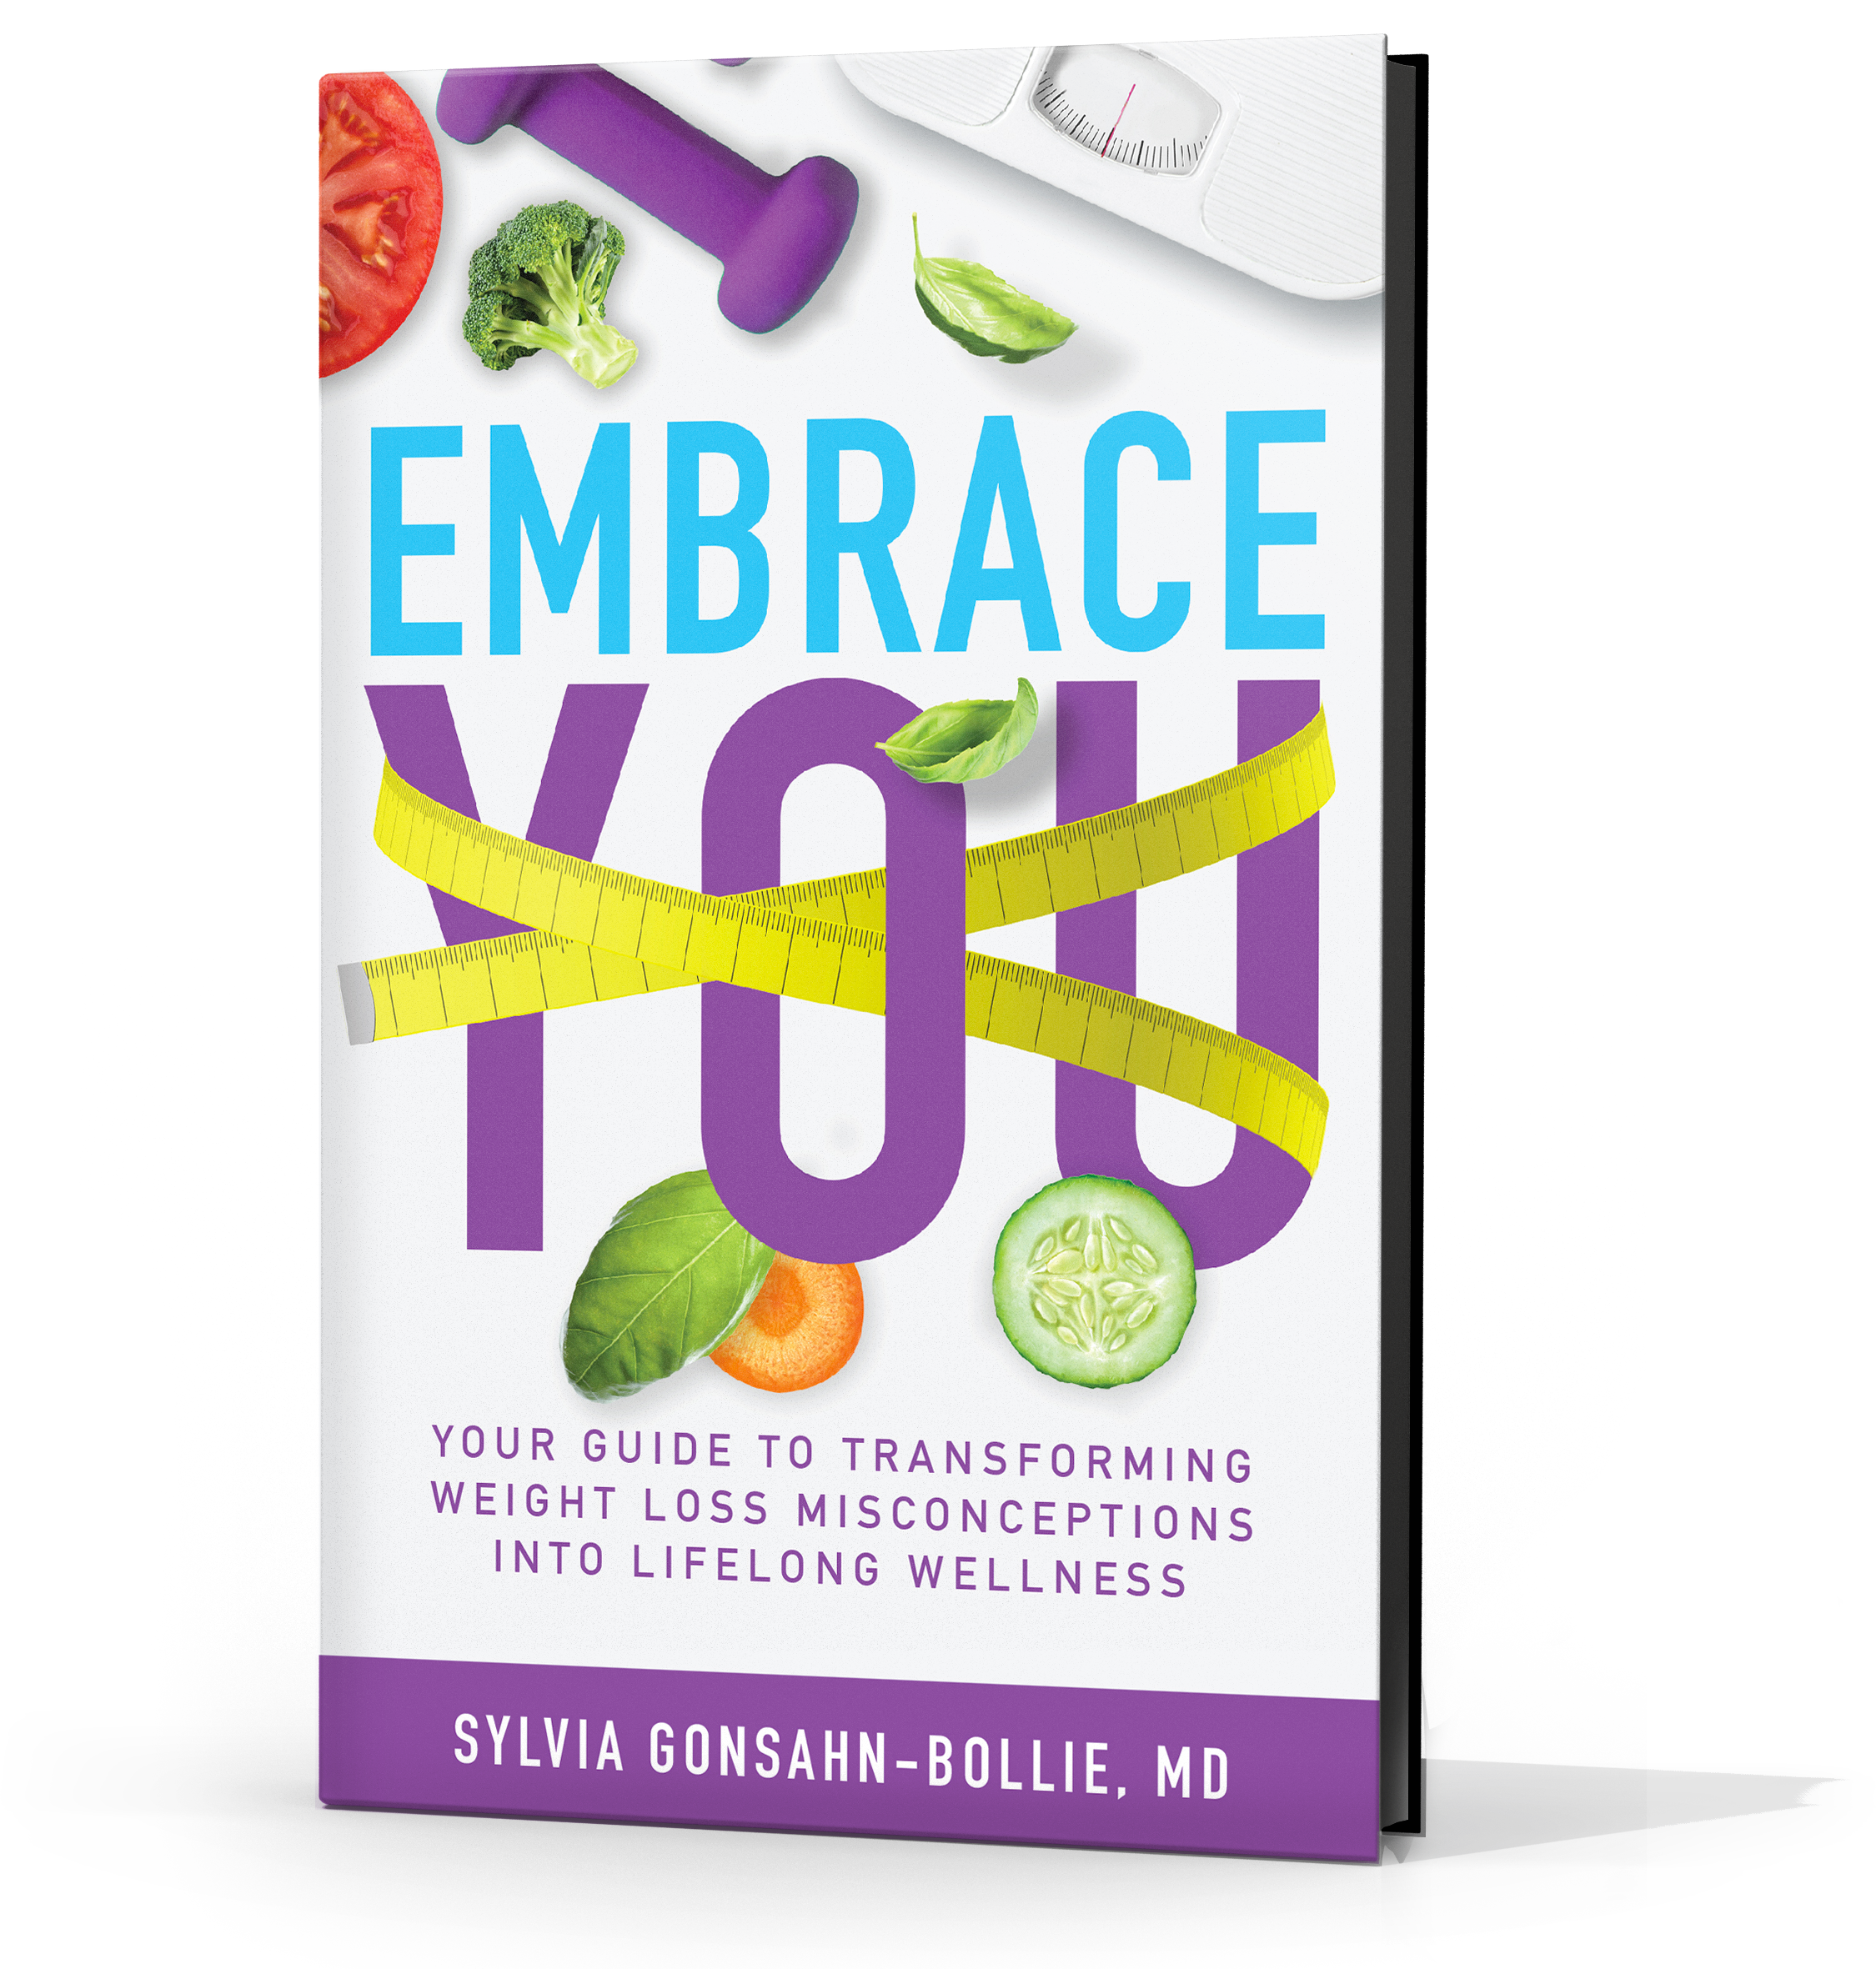 Physician and Bestselling Author Releases Unique Guide for Shedding Pounds